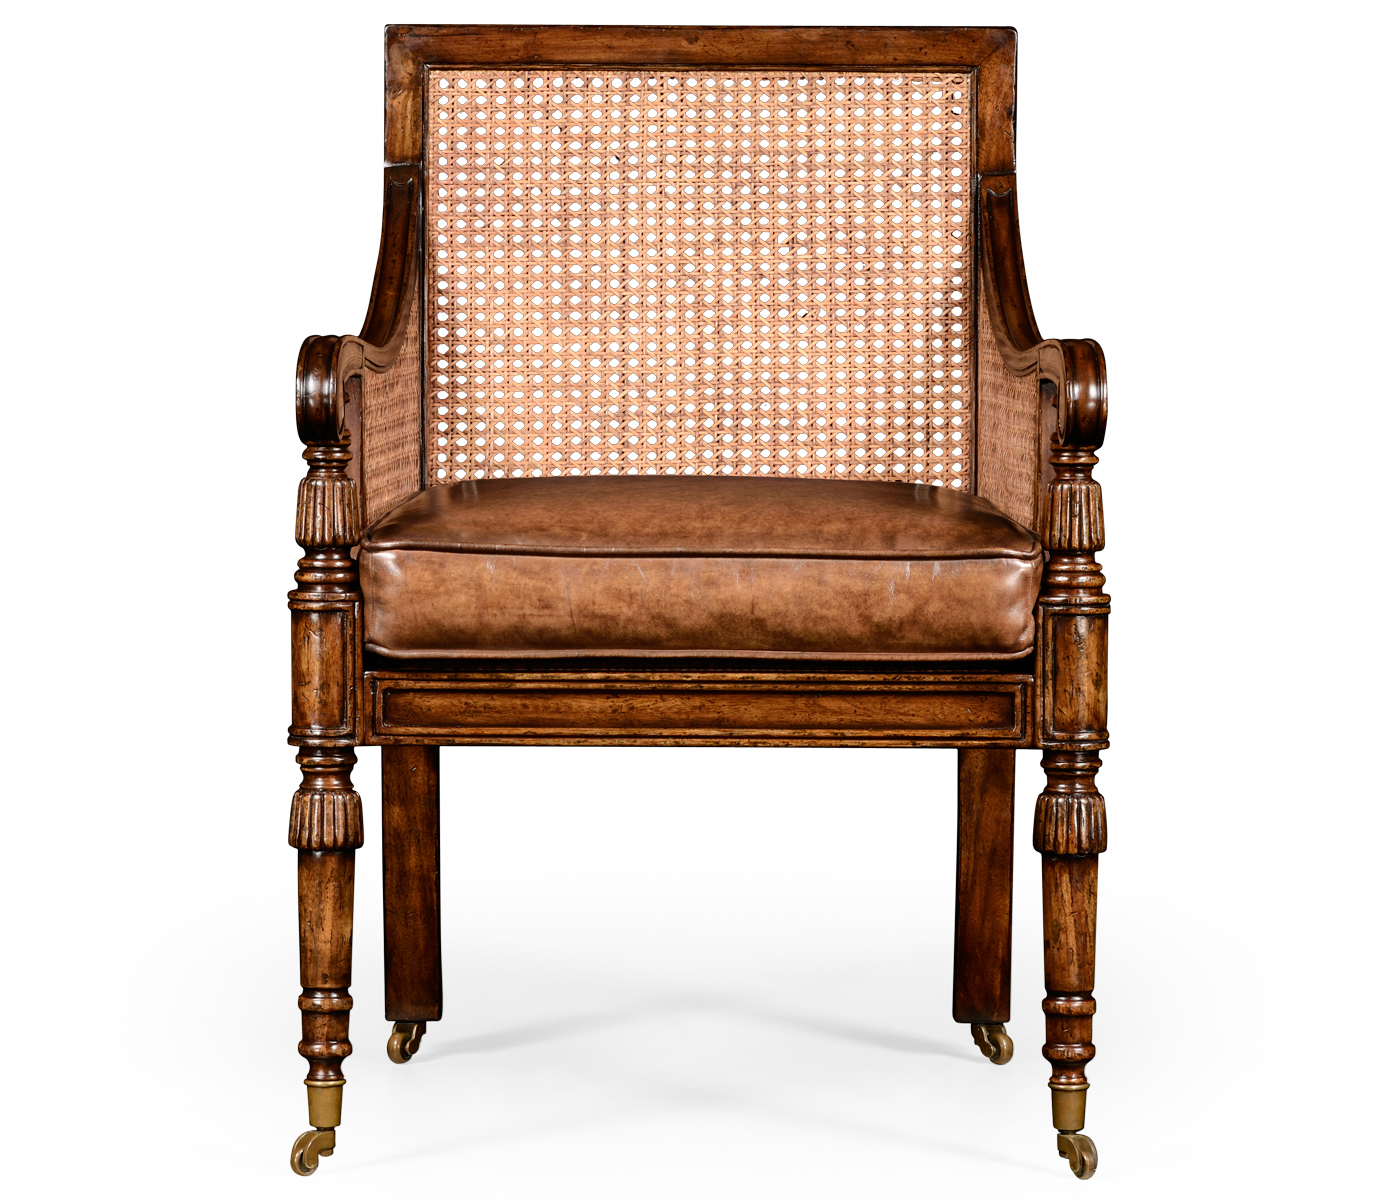 bergere chairs poang chair ikea caned walnut in medium antique chestnut